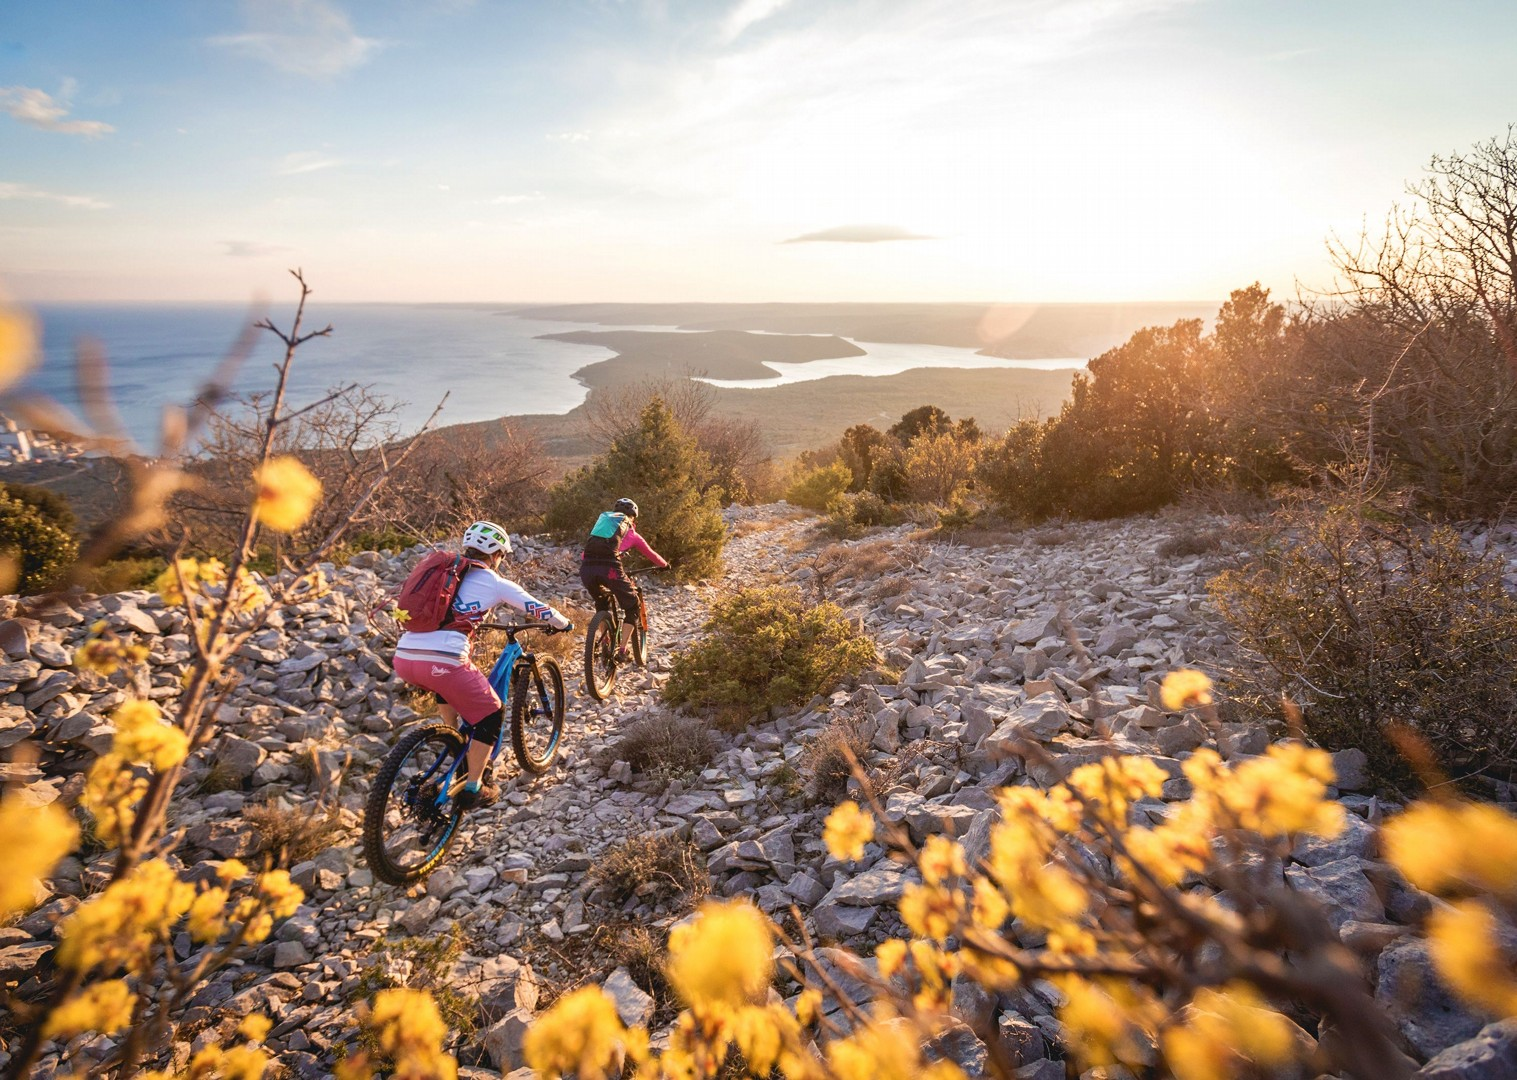 croatia-terra-magica-guided-mountain-biking-holiday.jpg - Croatia - Terra Magica - Mountain Biking